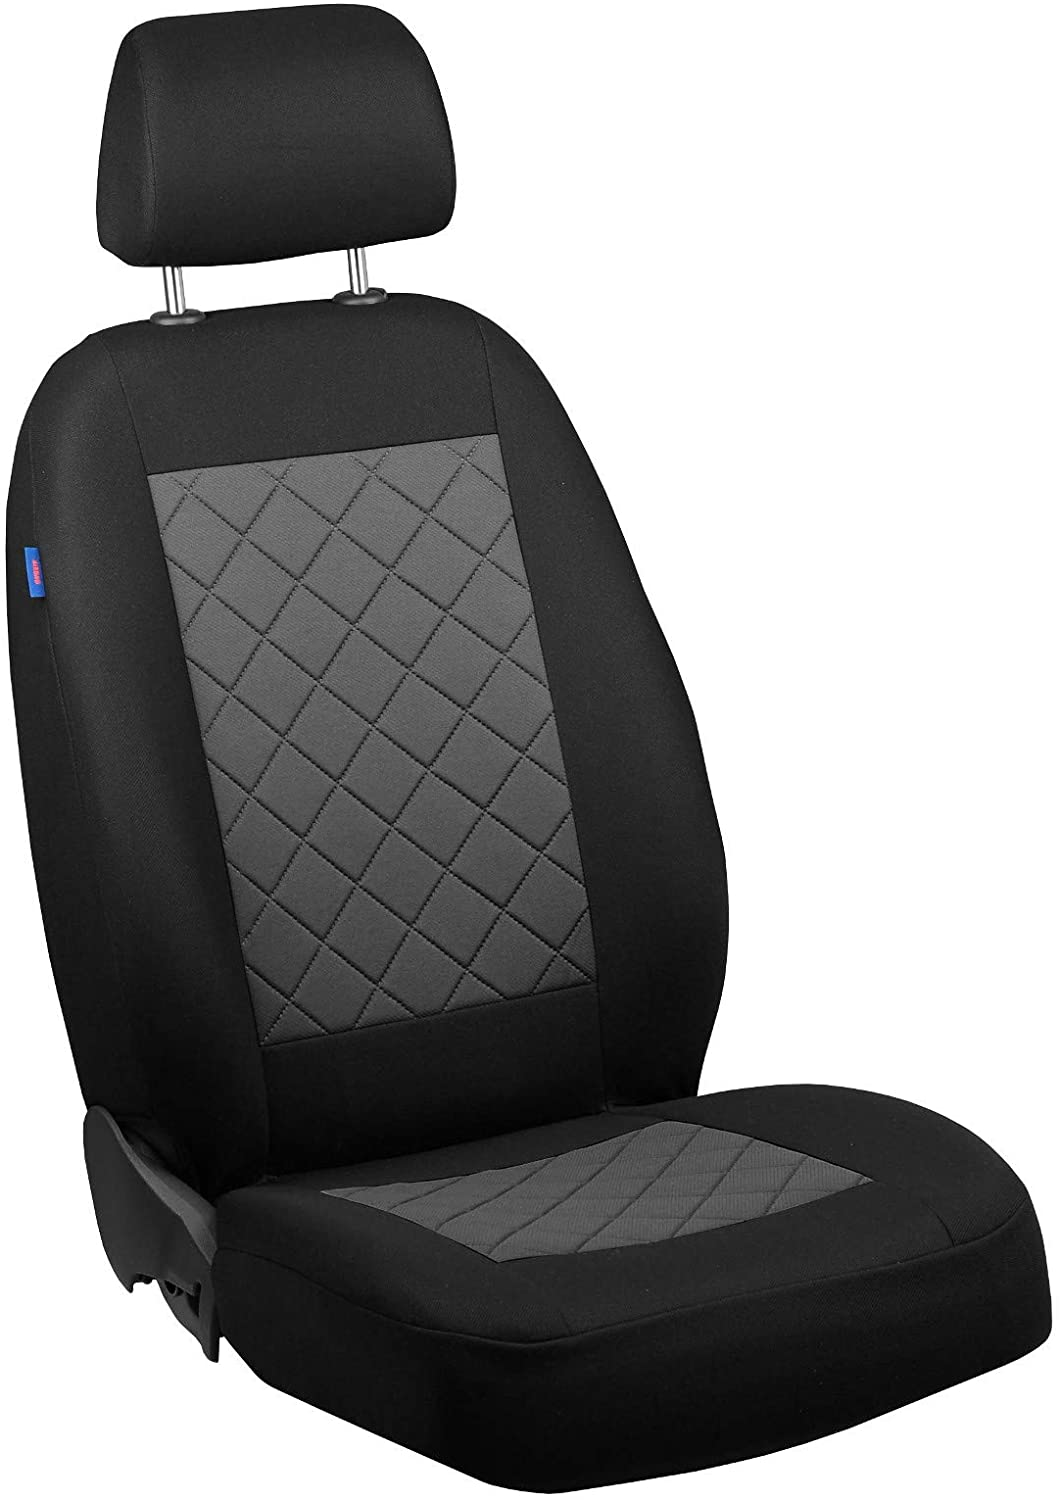 Zakschneider Car seat Cover for Albea - Driver Seat - Color Premium Black with Grey Quilted Squares